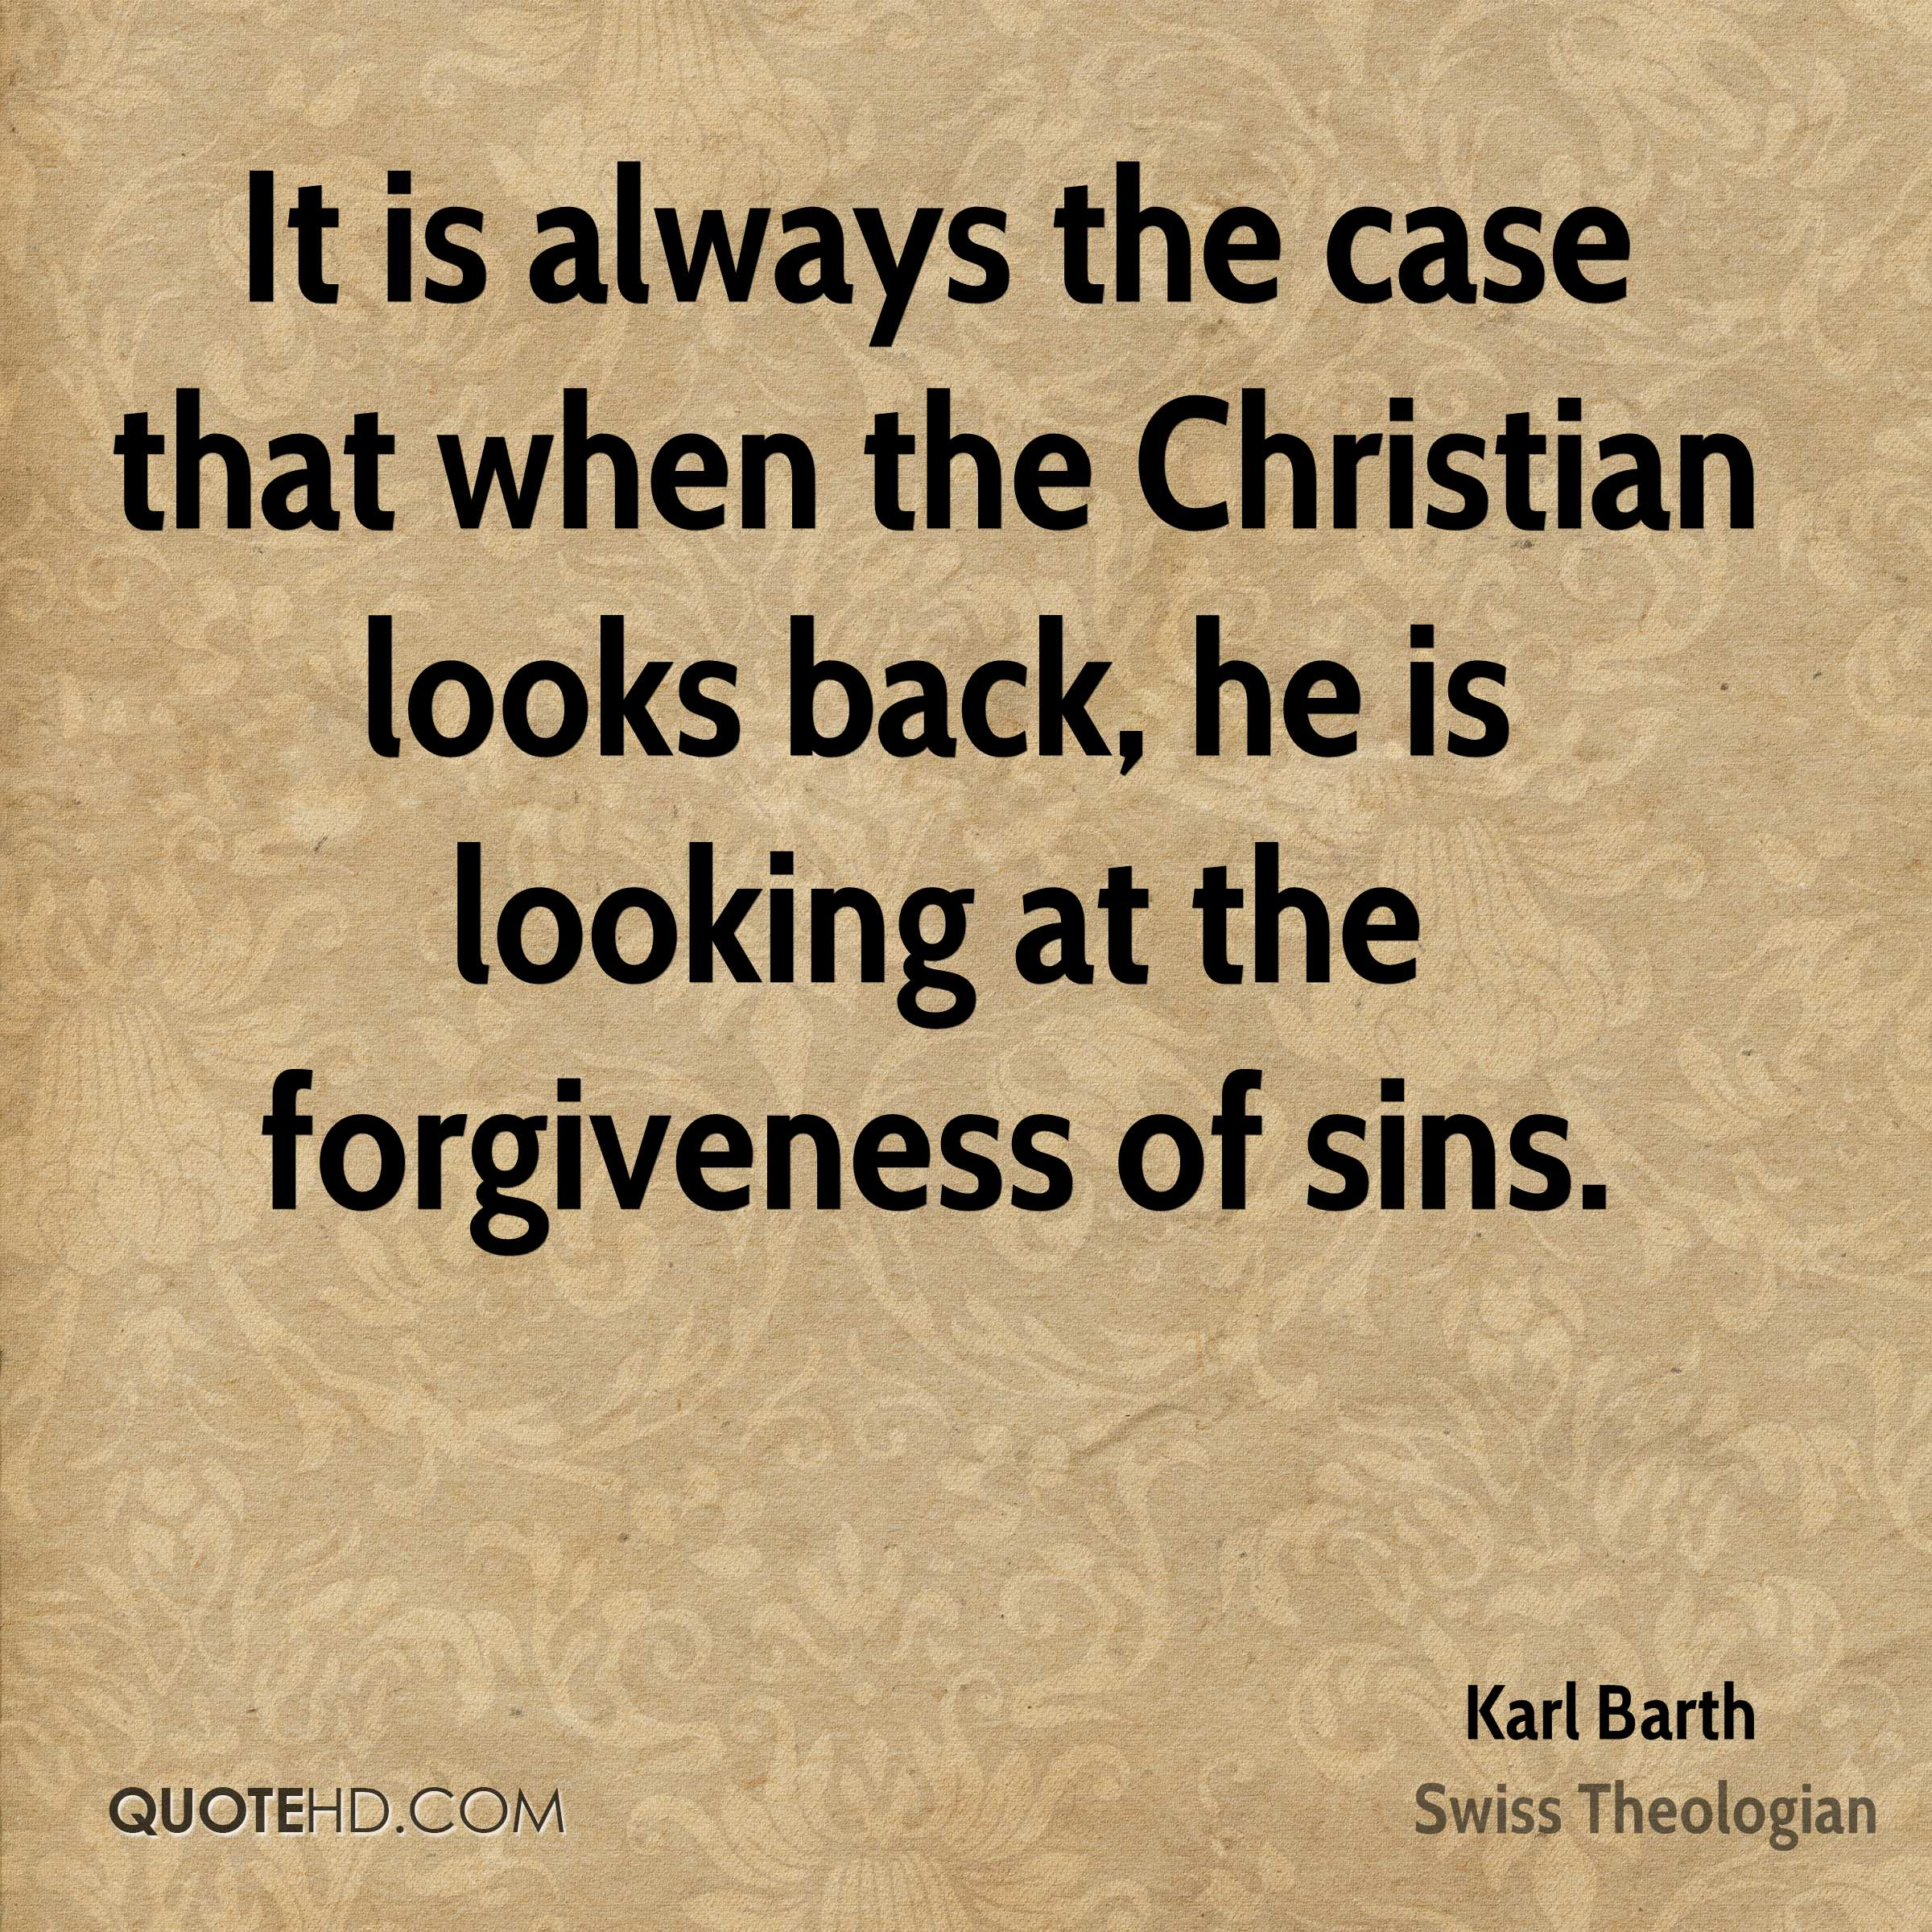 It is always the case that when the Christian looks back, he is looking at the forgiveness of sins.